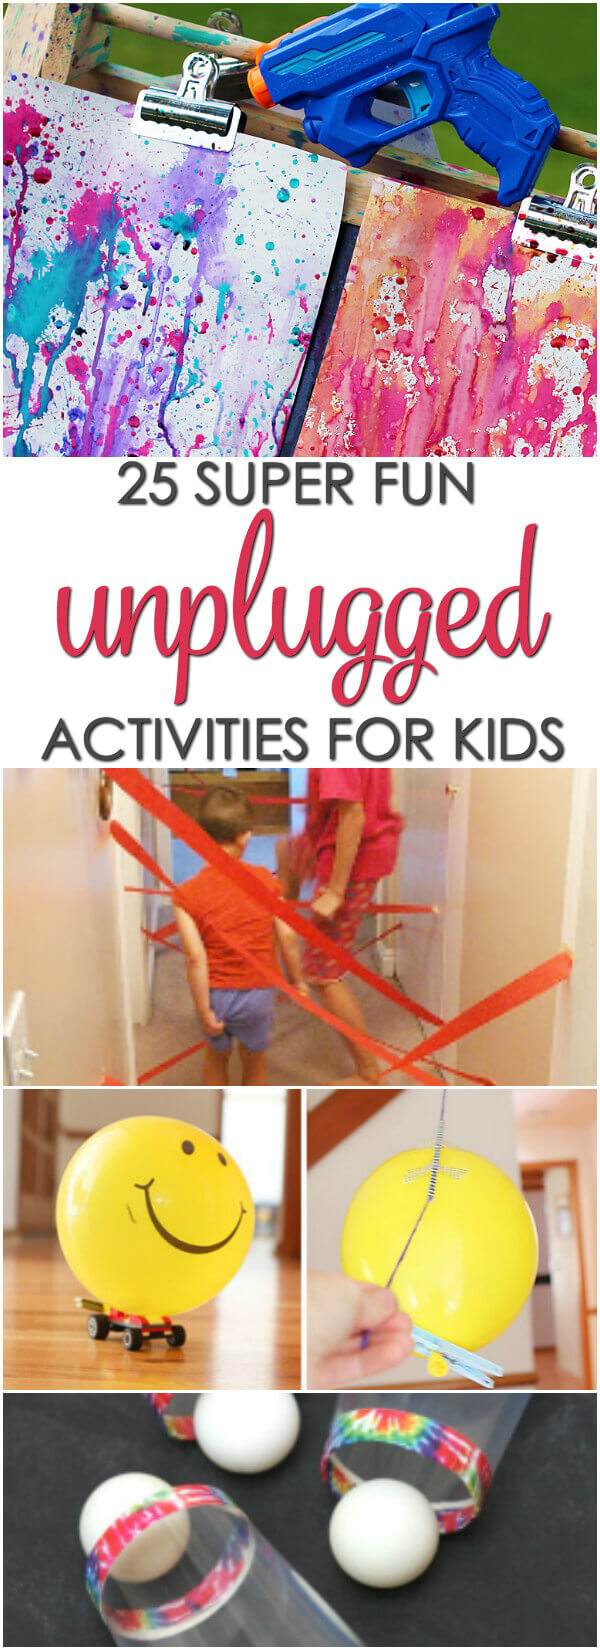 Here are 25 Super Fun Unplugged Activities for Kids that are perfect boredom busters for snow days and rainy days